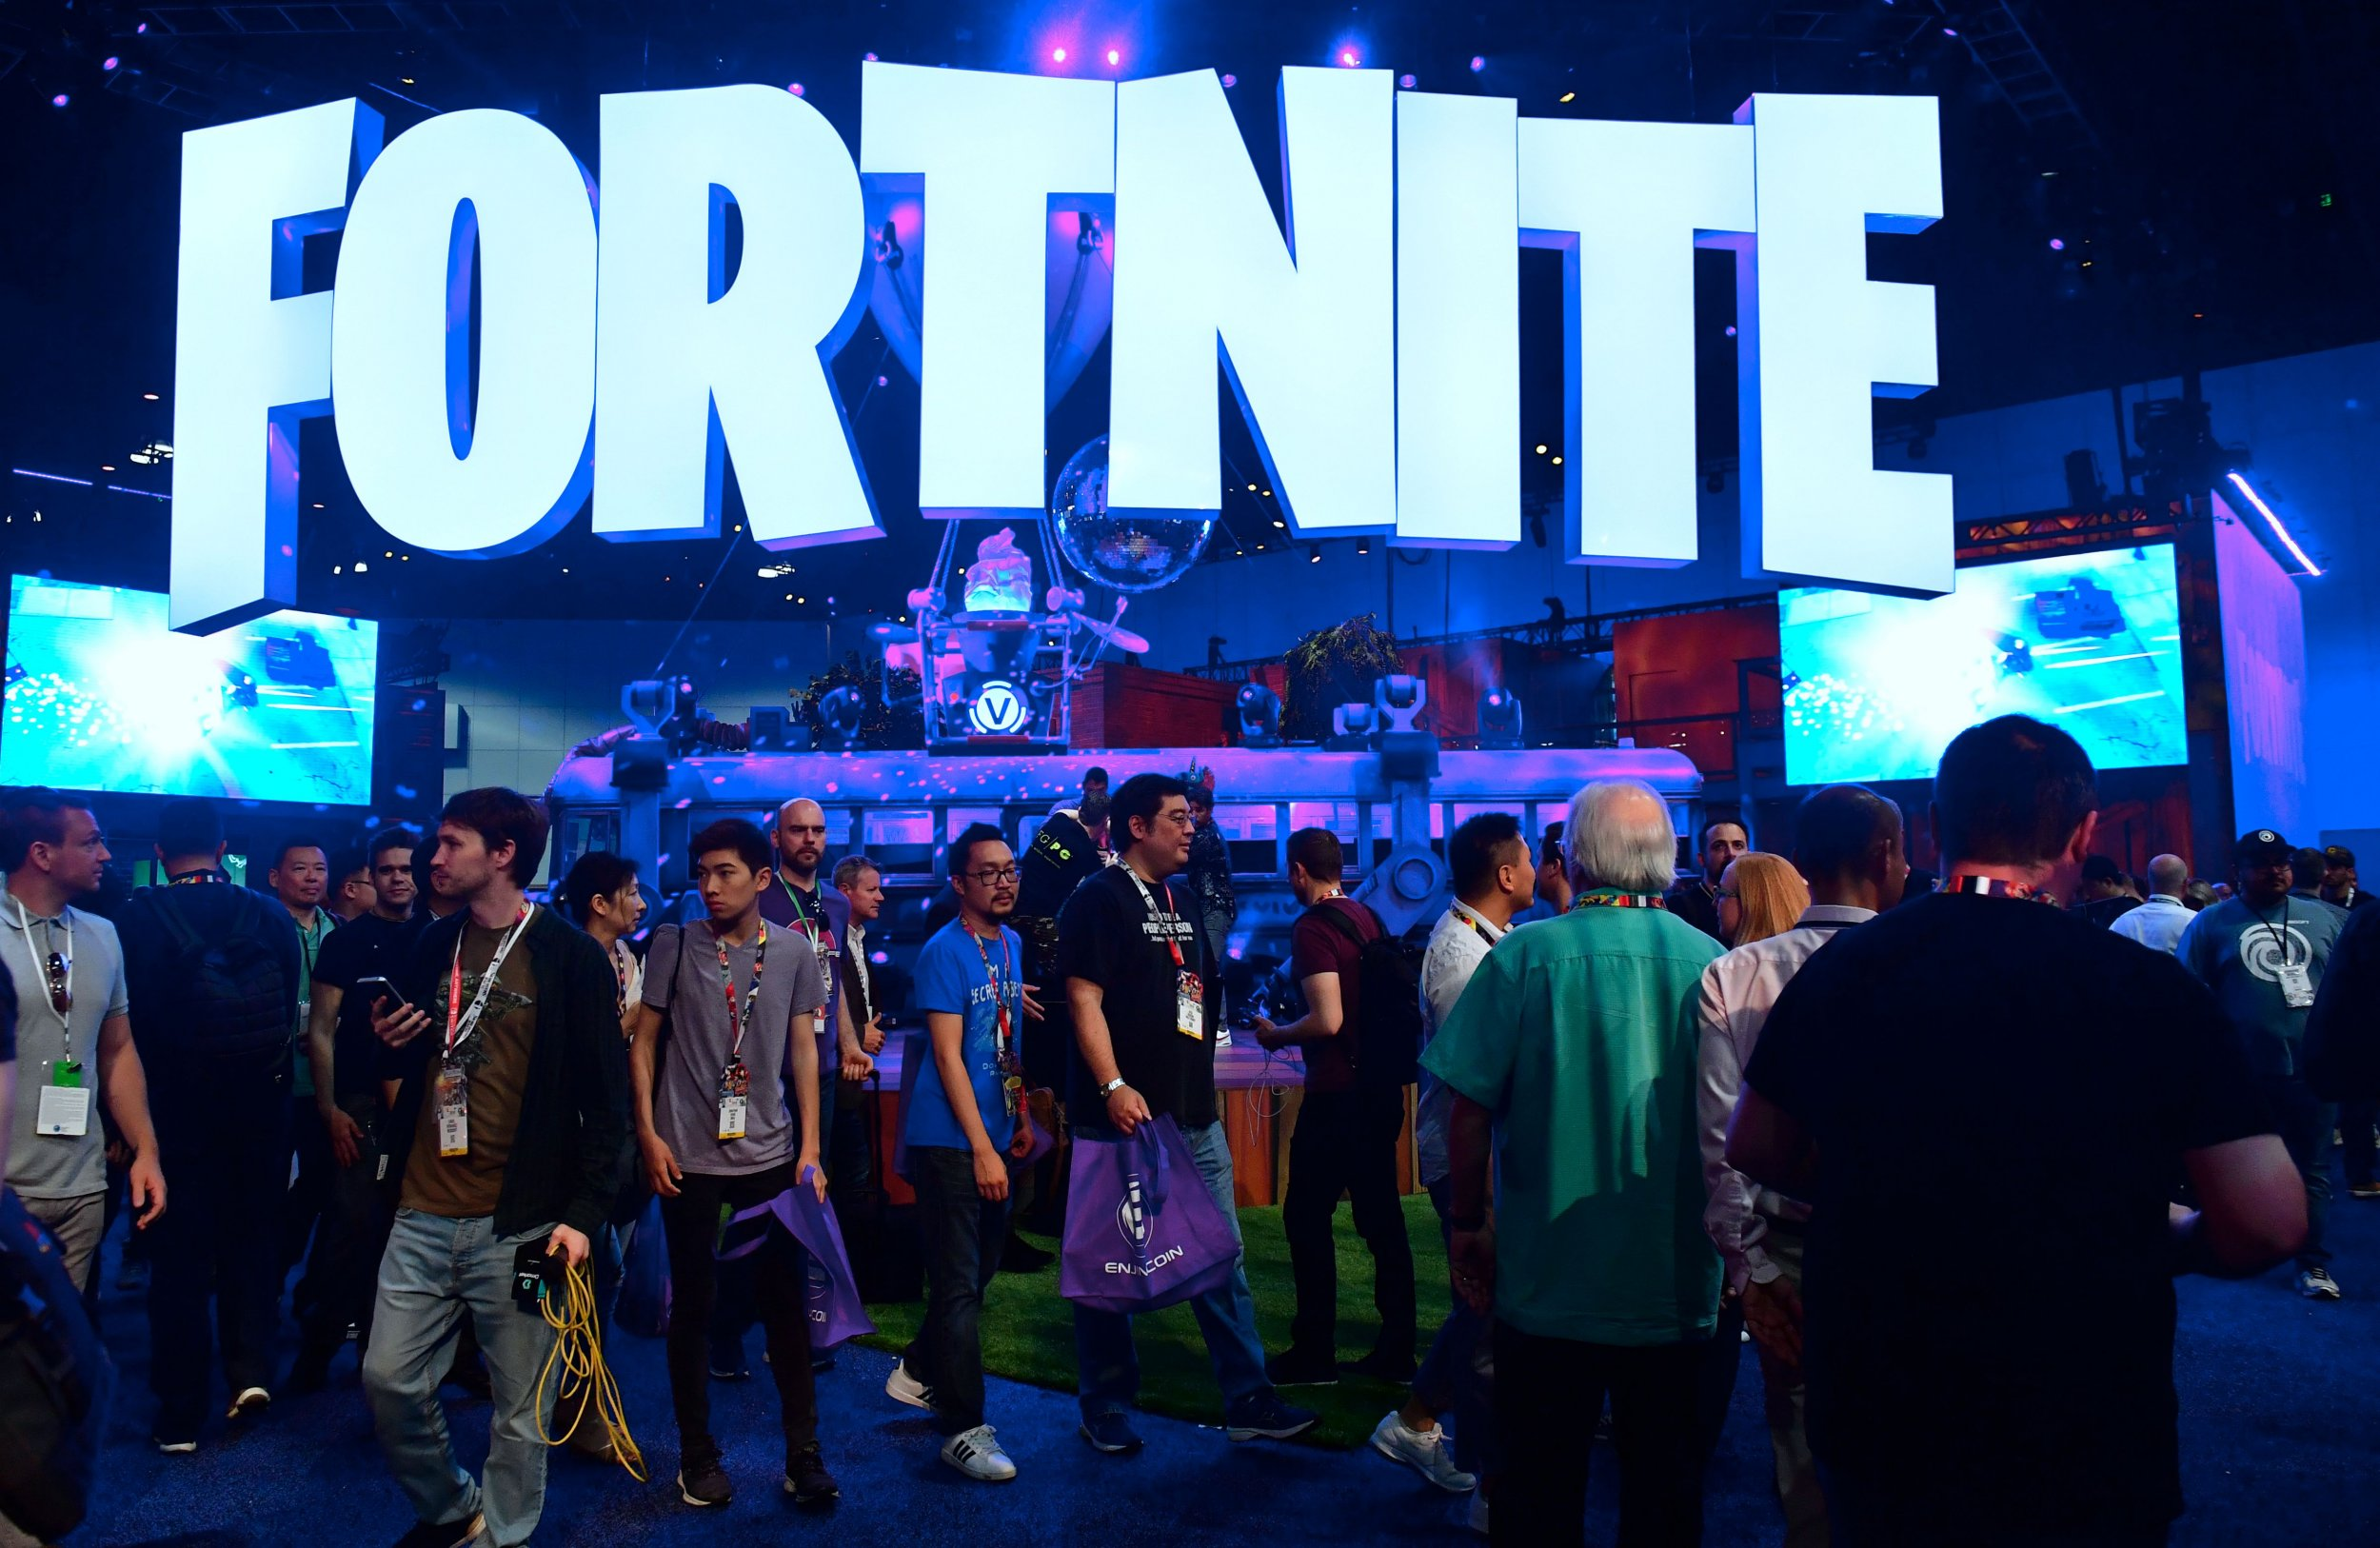 Fortnite, Child Pornography, Pedophilia, Florida, Online Gaming, Crime